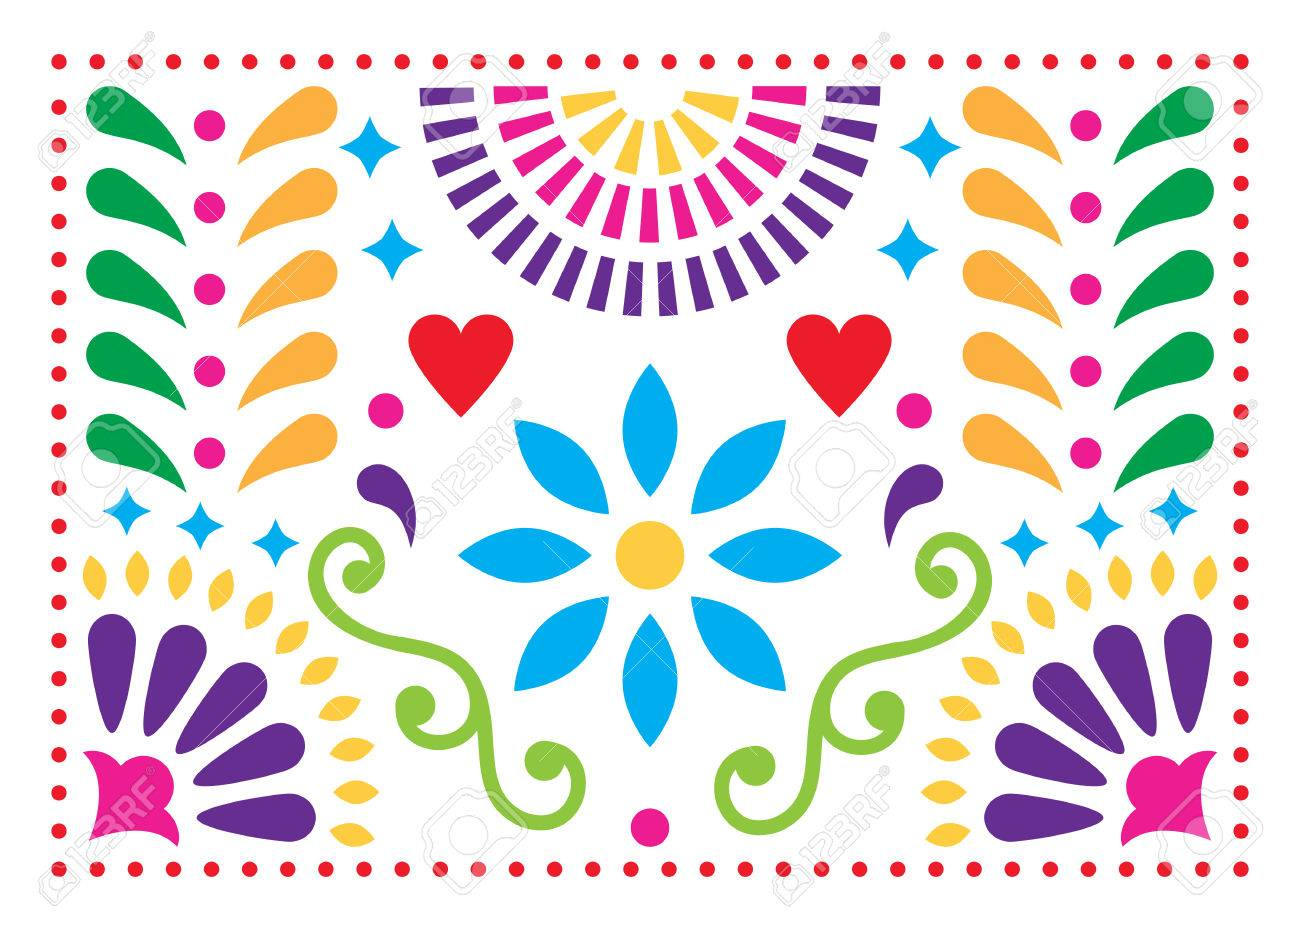 Mexican folk art vector pattern colorful design with flowers mexican folk art vector pattern colorful design with flowers inspired by traditional art form mexico mightylinksfo Gallery